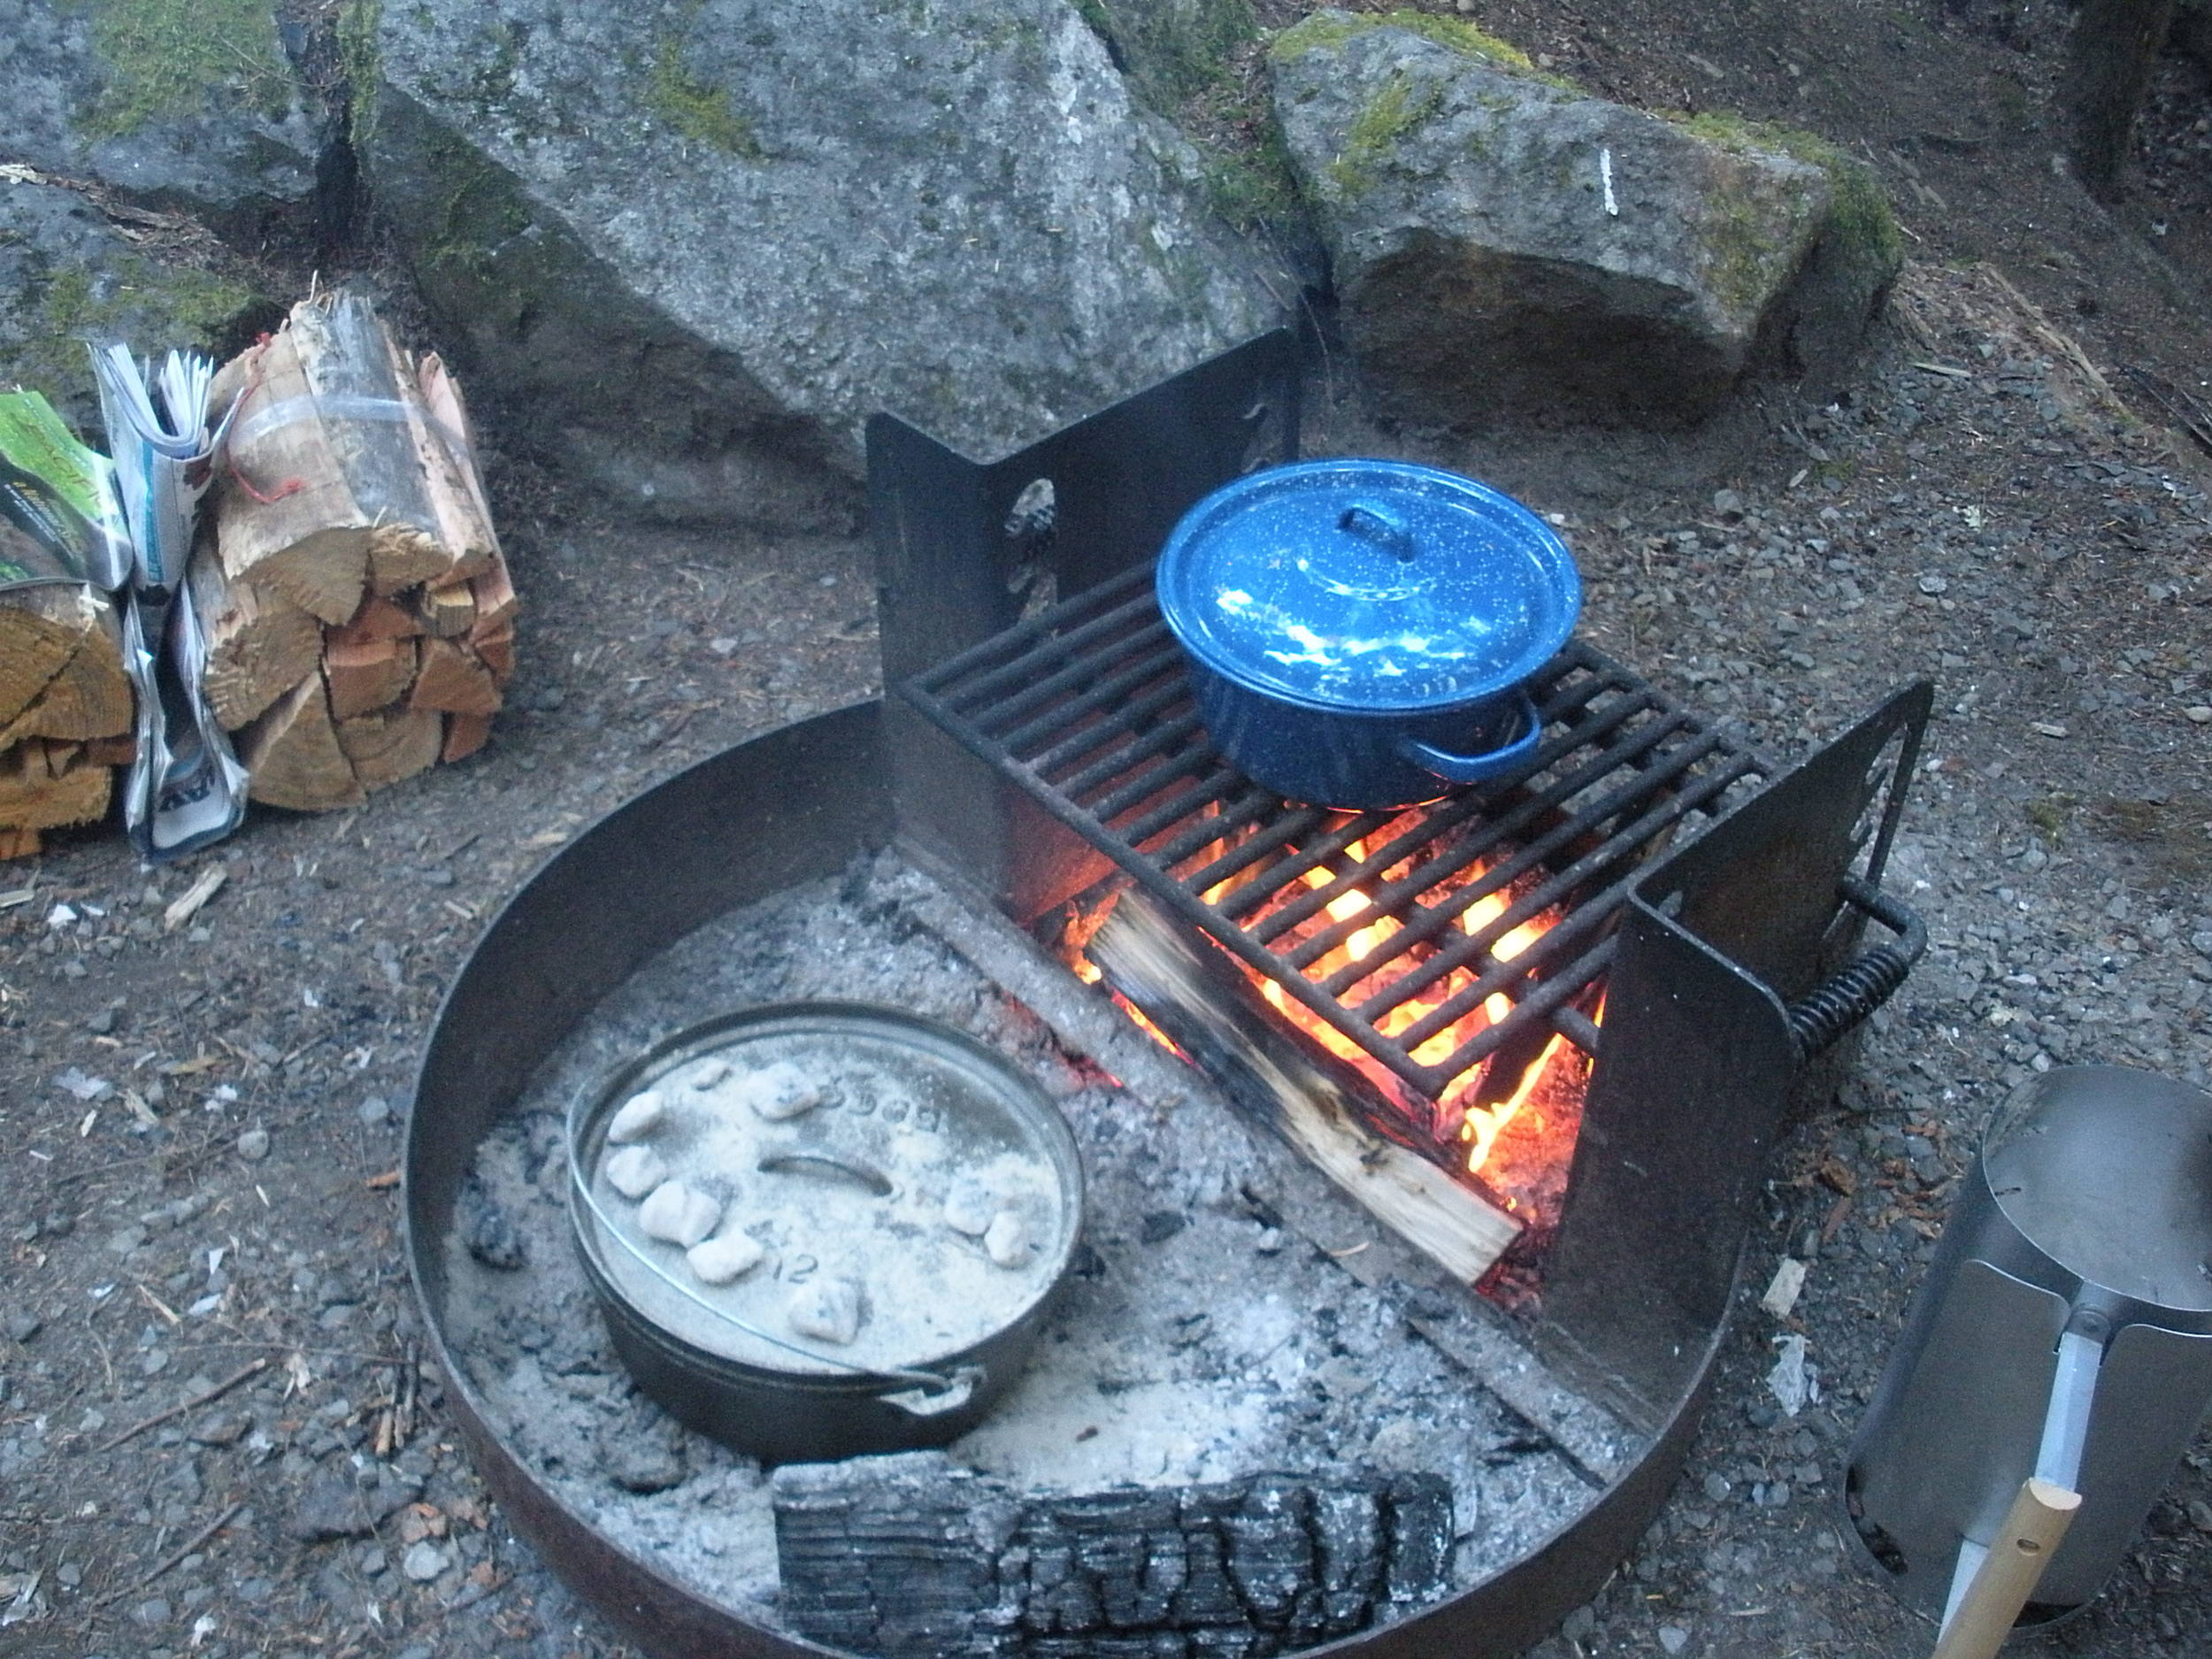 Cooking dinner on Friday night. On the menu: chili, dutch oven cornbread, and s'mores